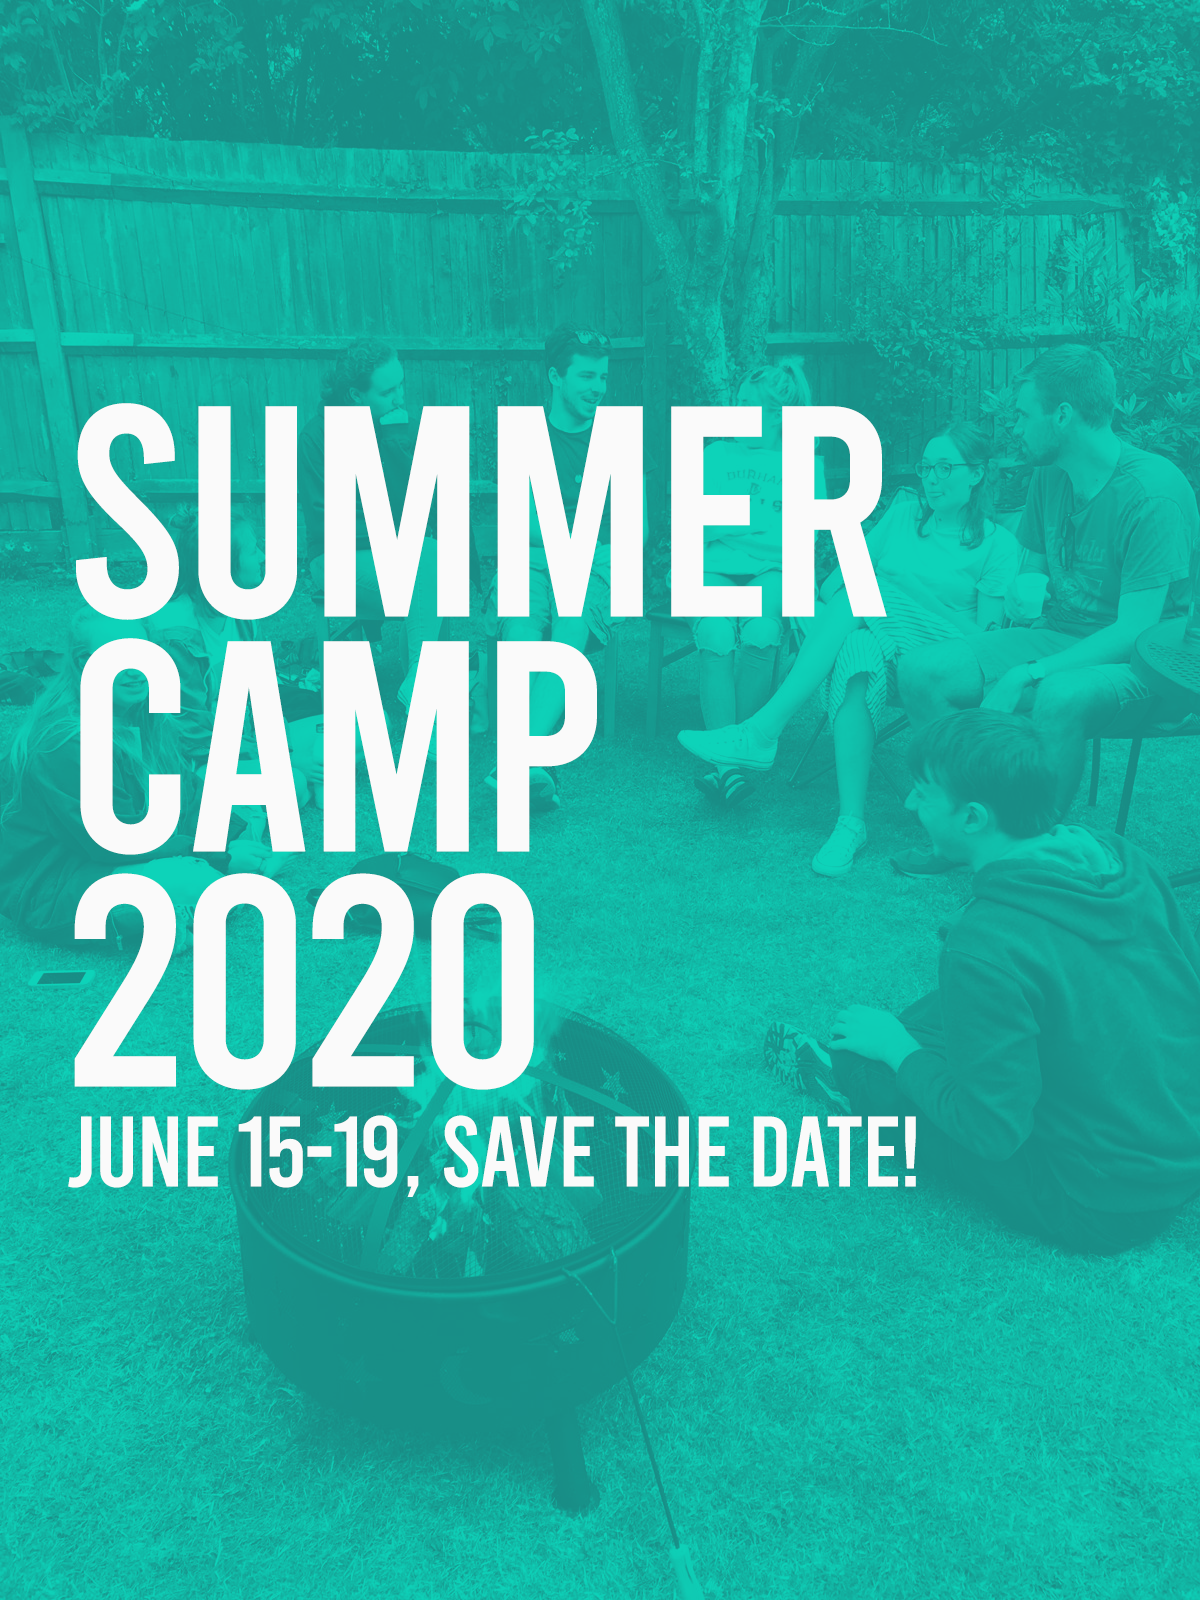 summercamp2020.png